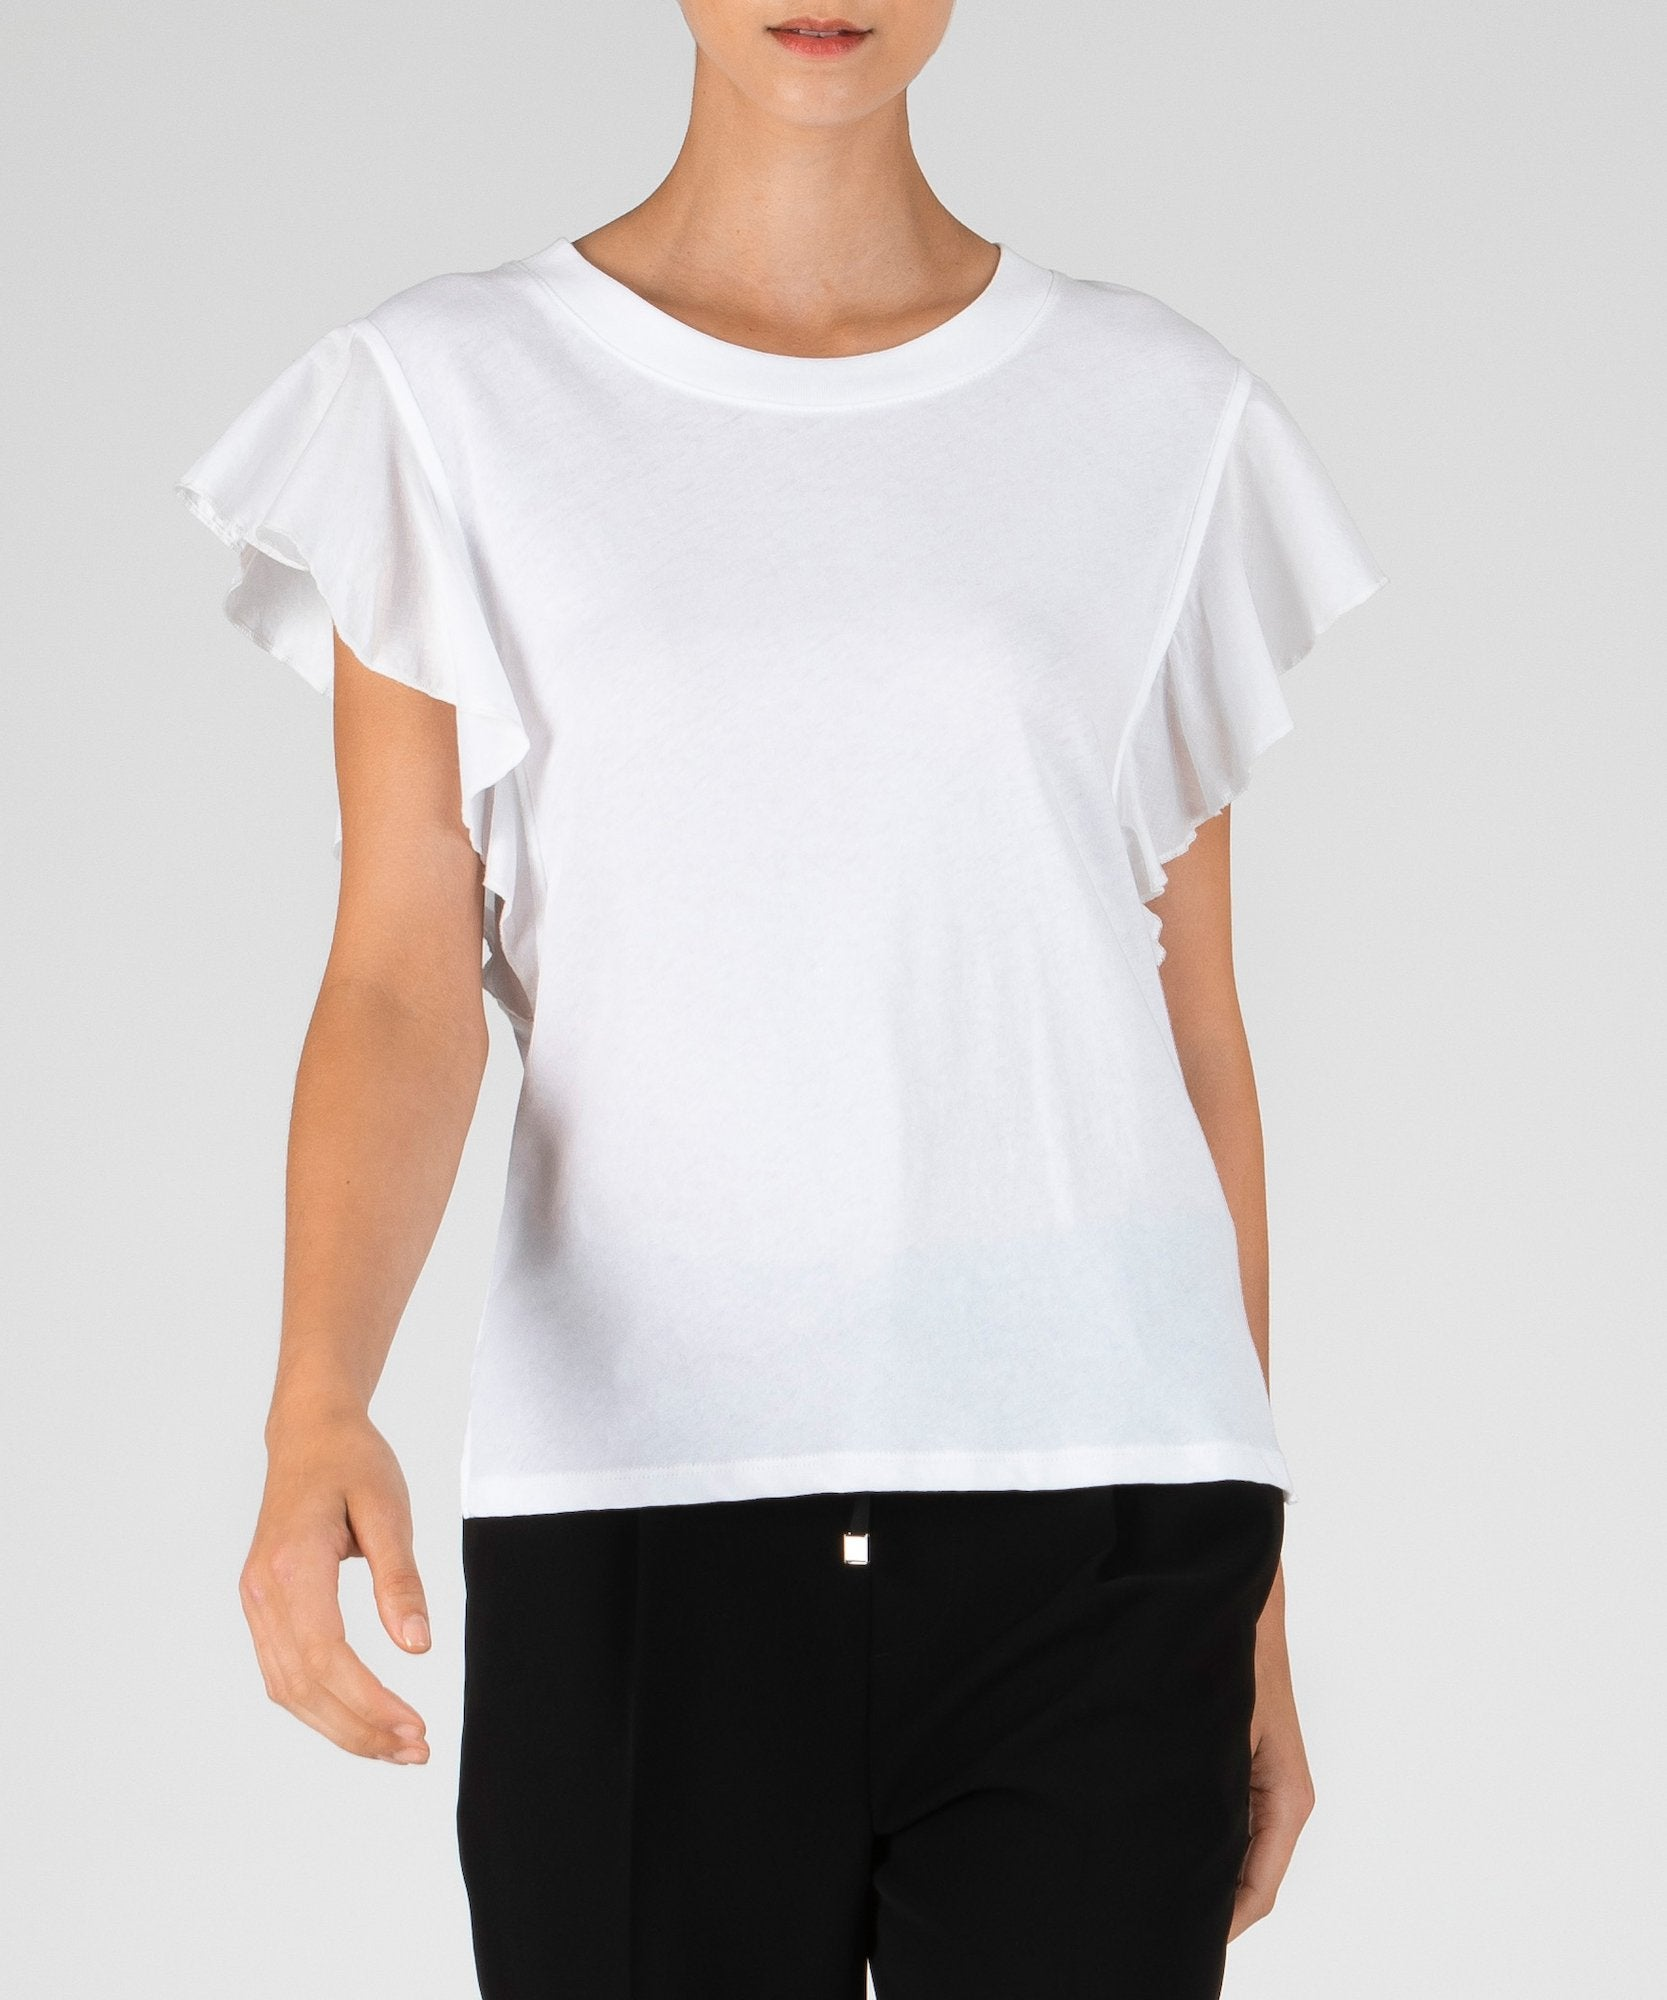 White Mixed Media Fluted Sleeve Tee - Women's Cotton Top by ATM Anthony Thomas Melillo